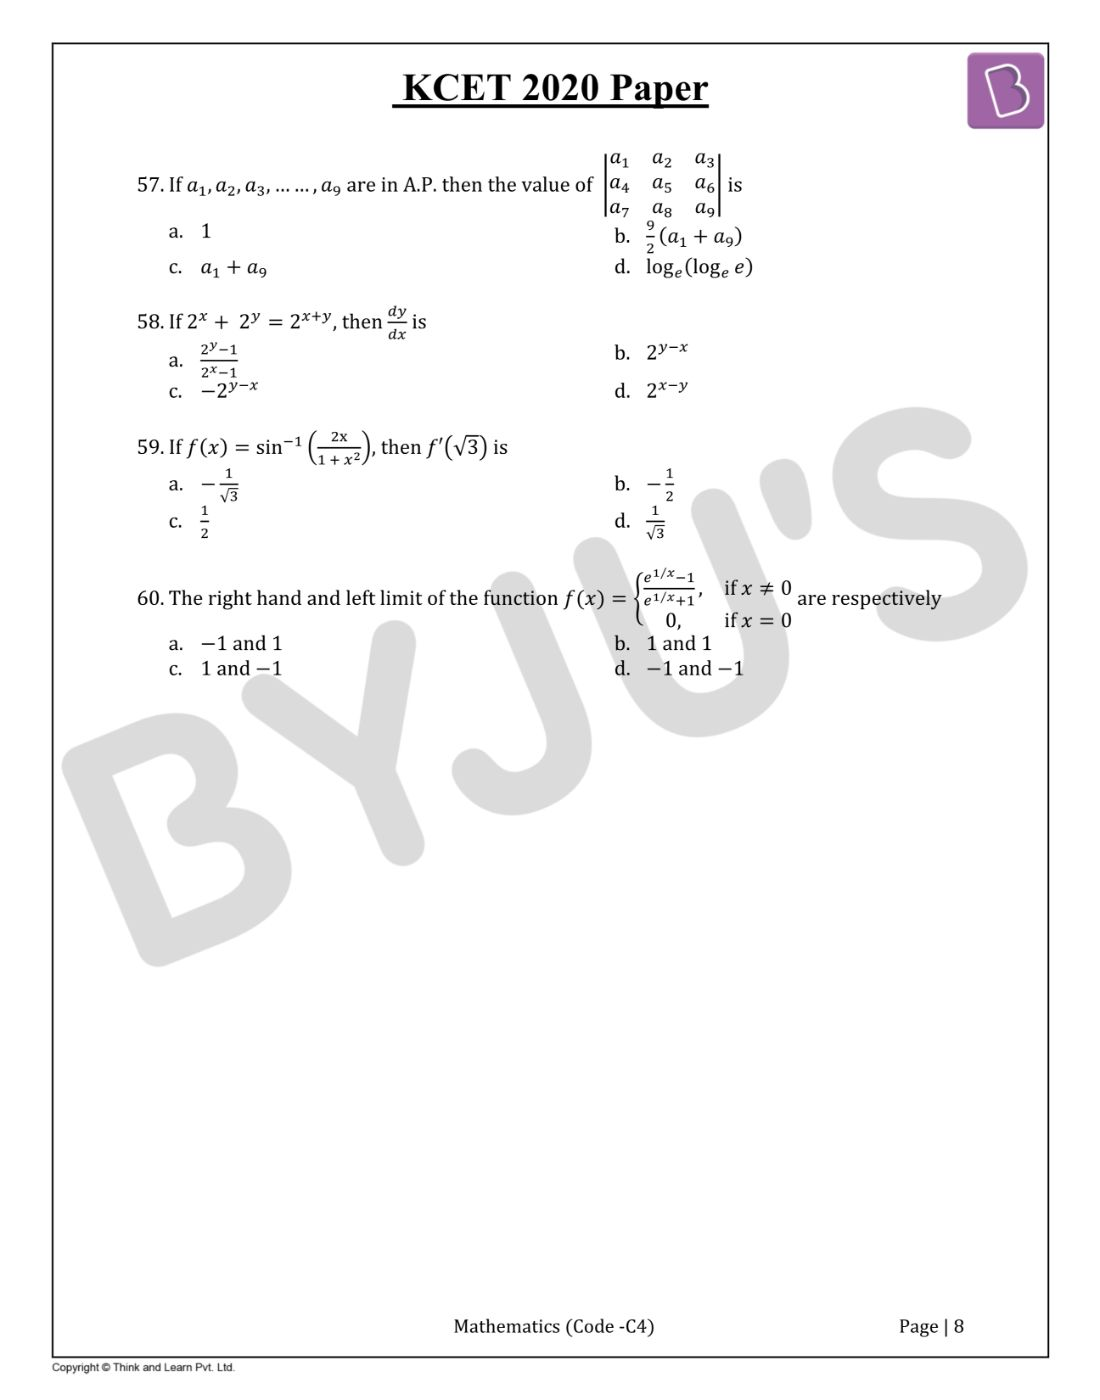 KCET 2020 Mathematics Question Paper and Solutions